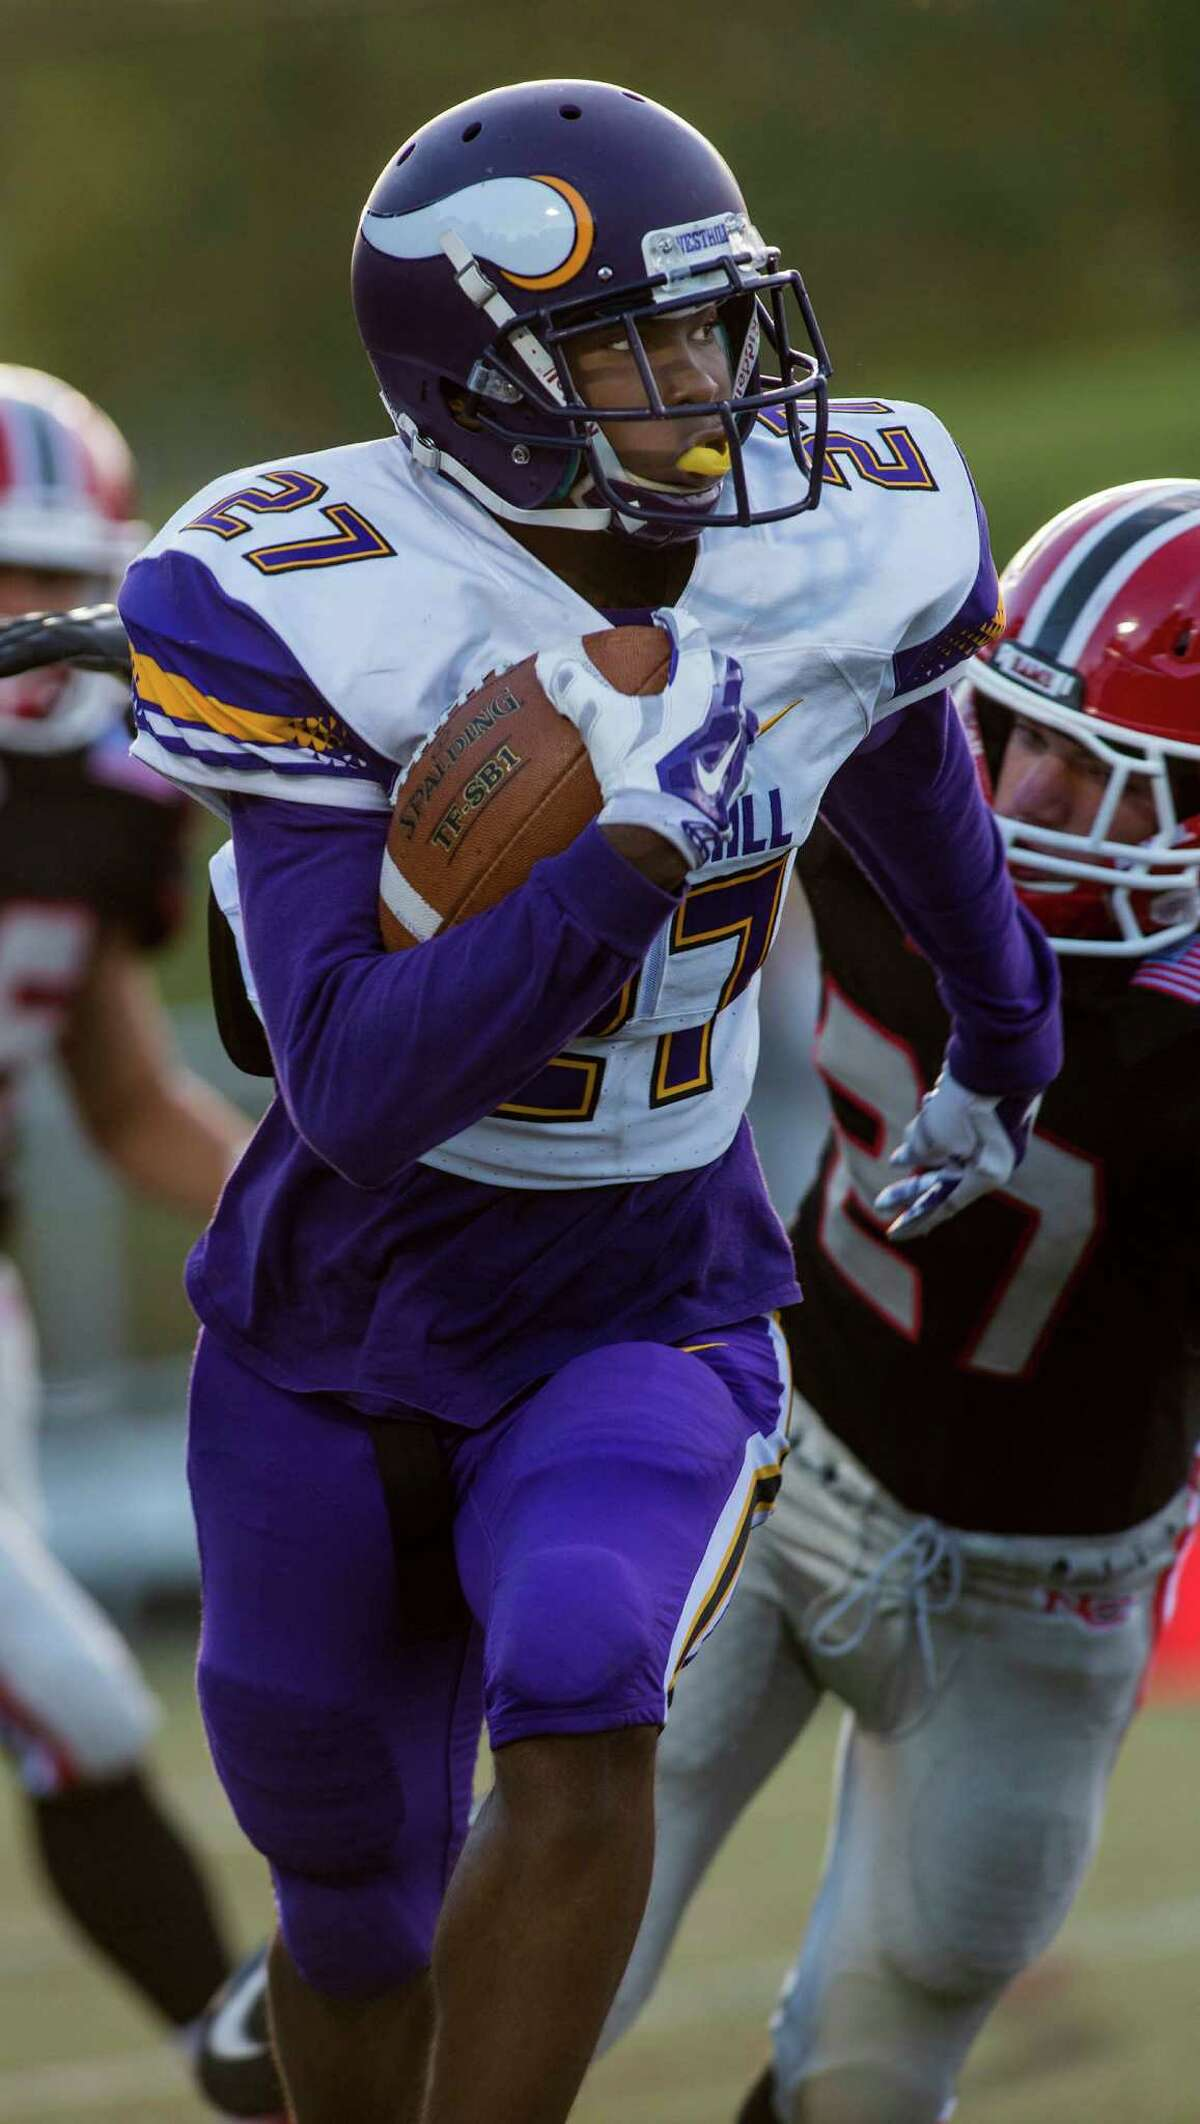 Westhill High School's Everett Charles Brown runs with the ball against New Canaan High School on Monday.